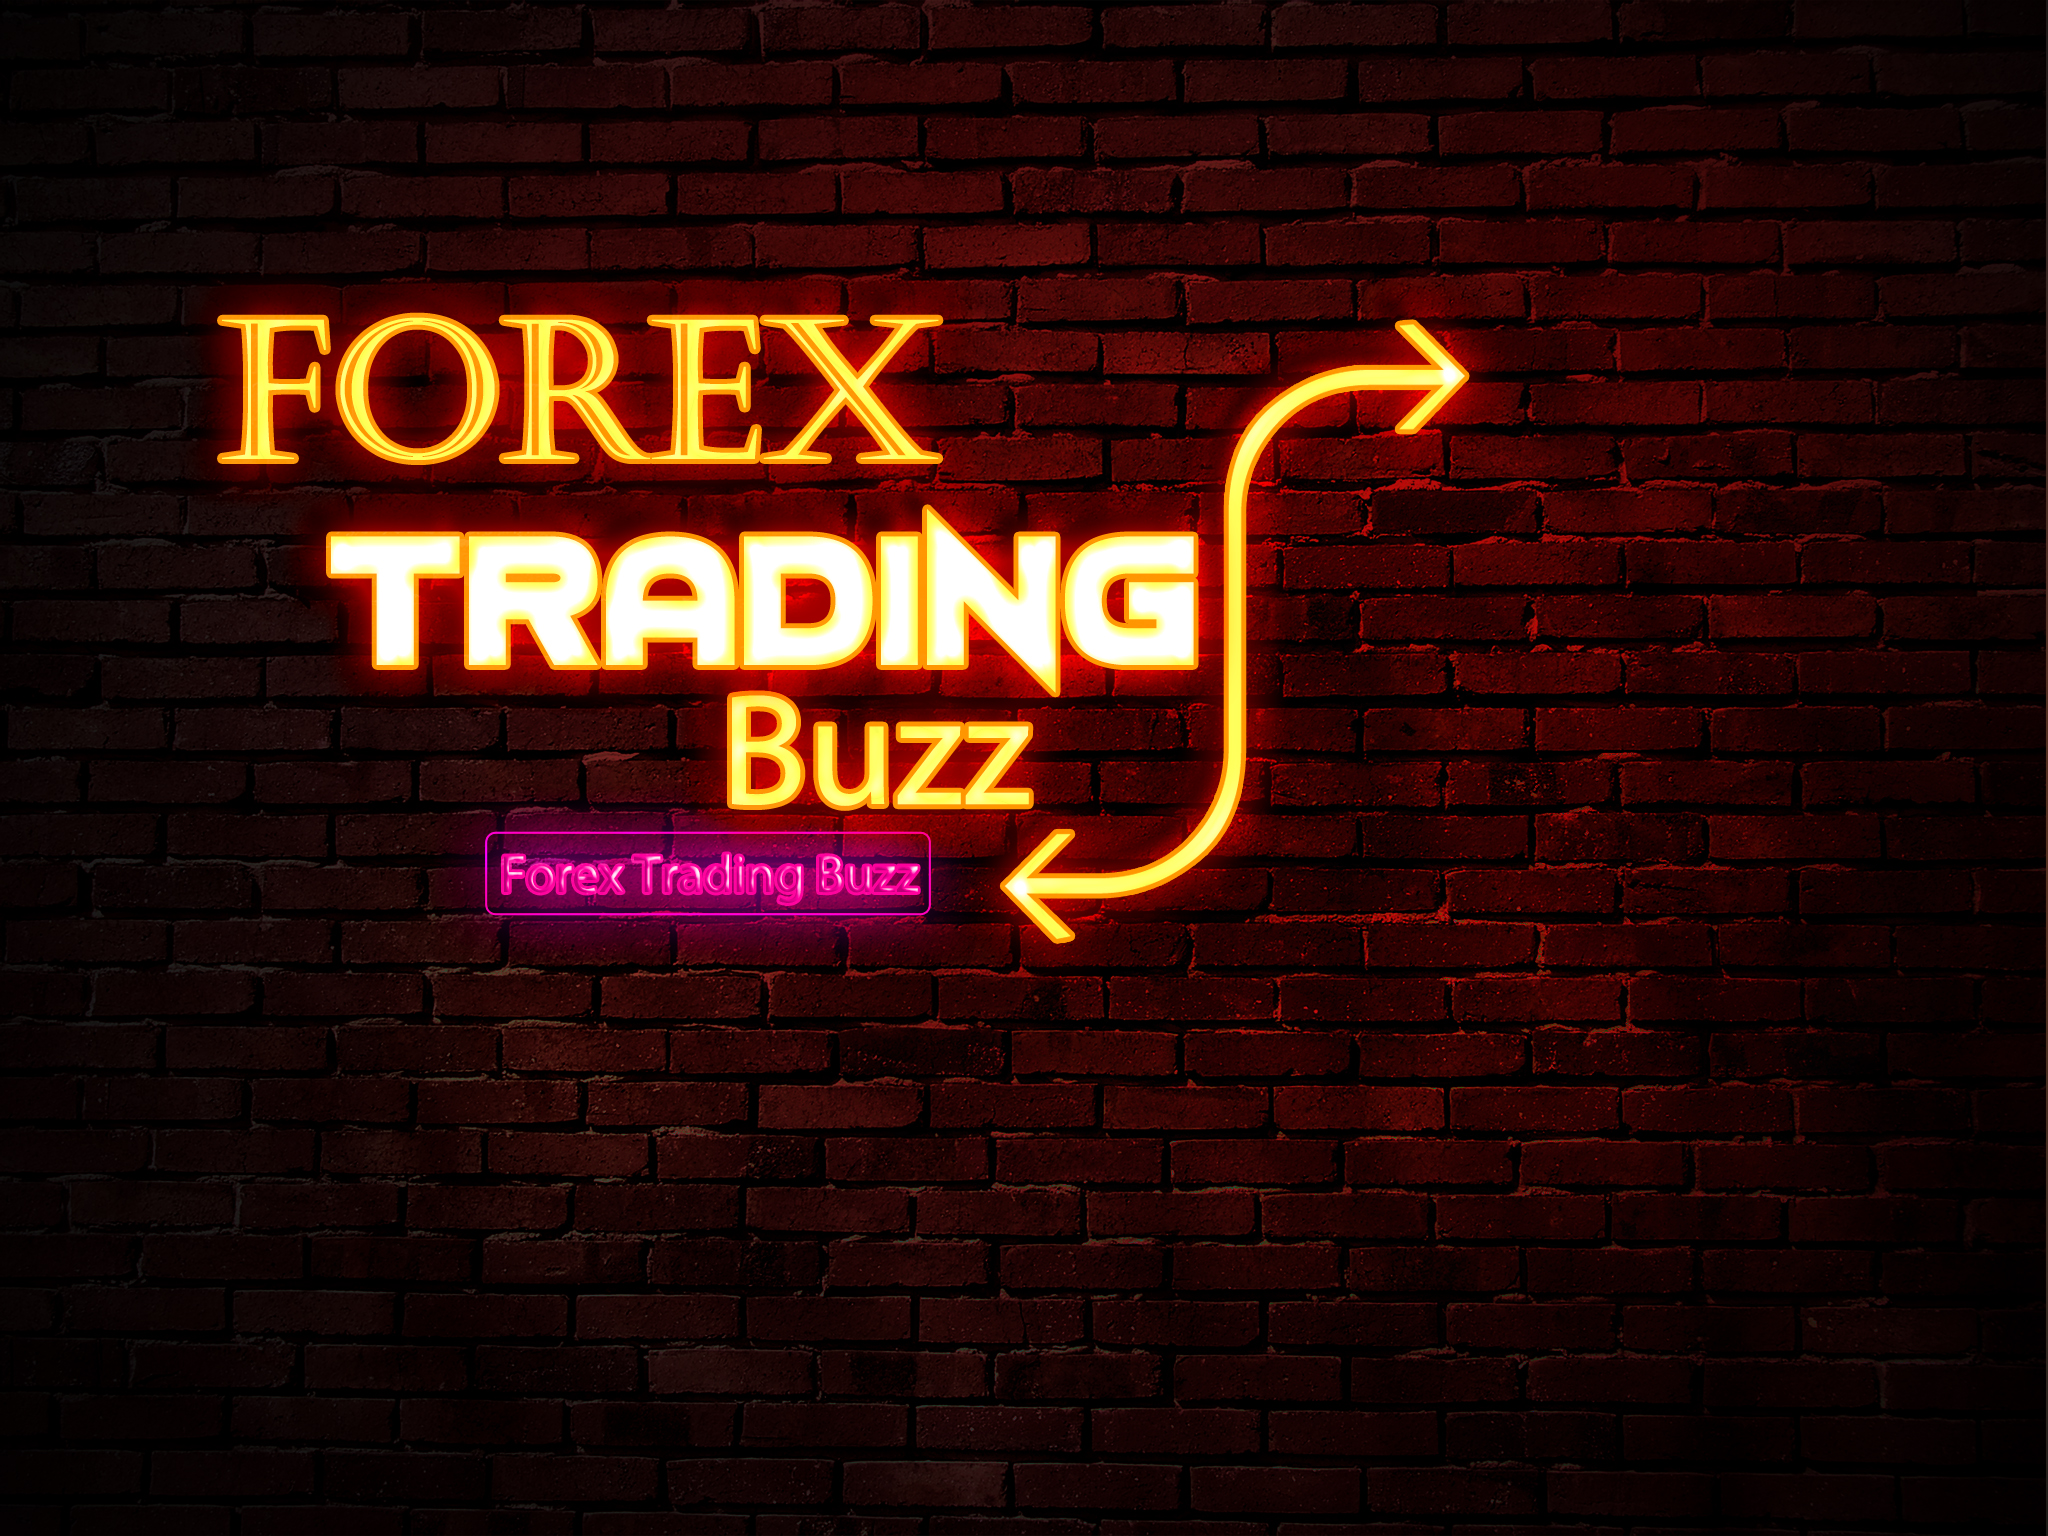 Best 100 forex brokers in the world